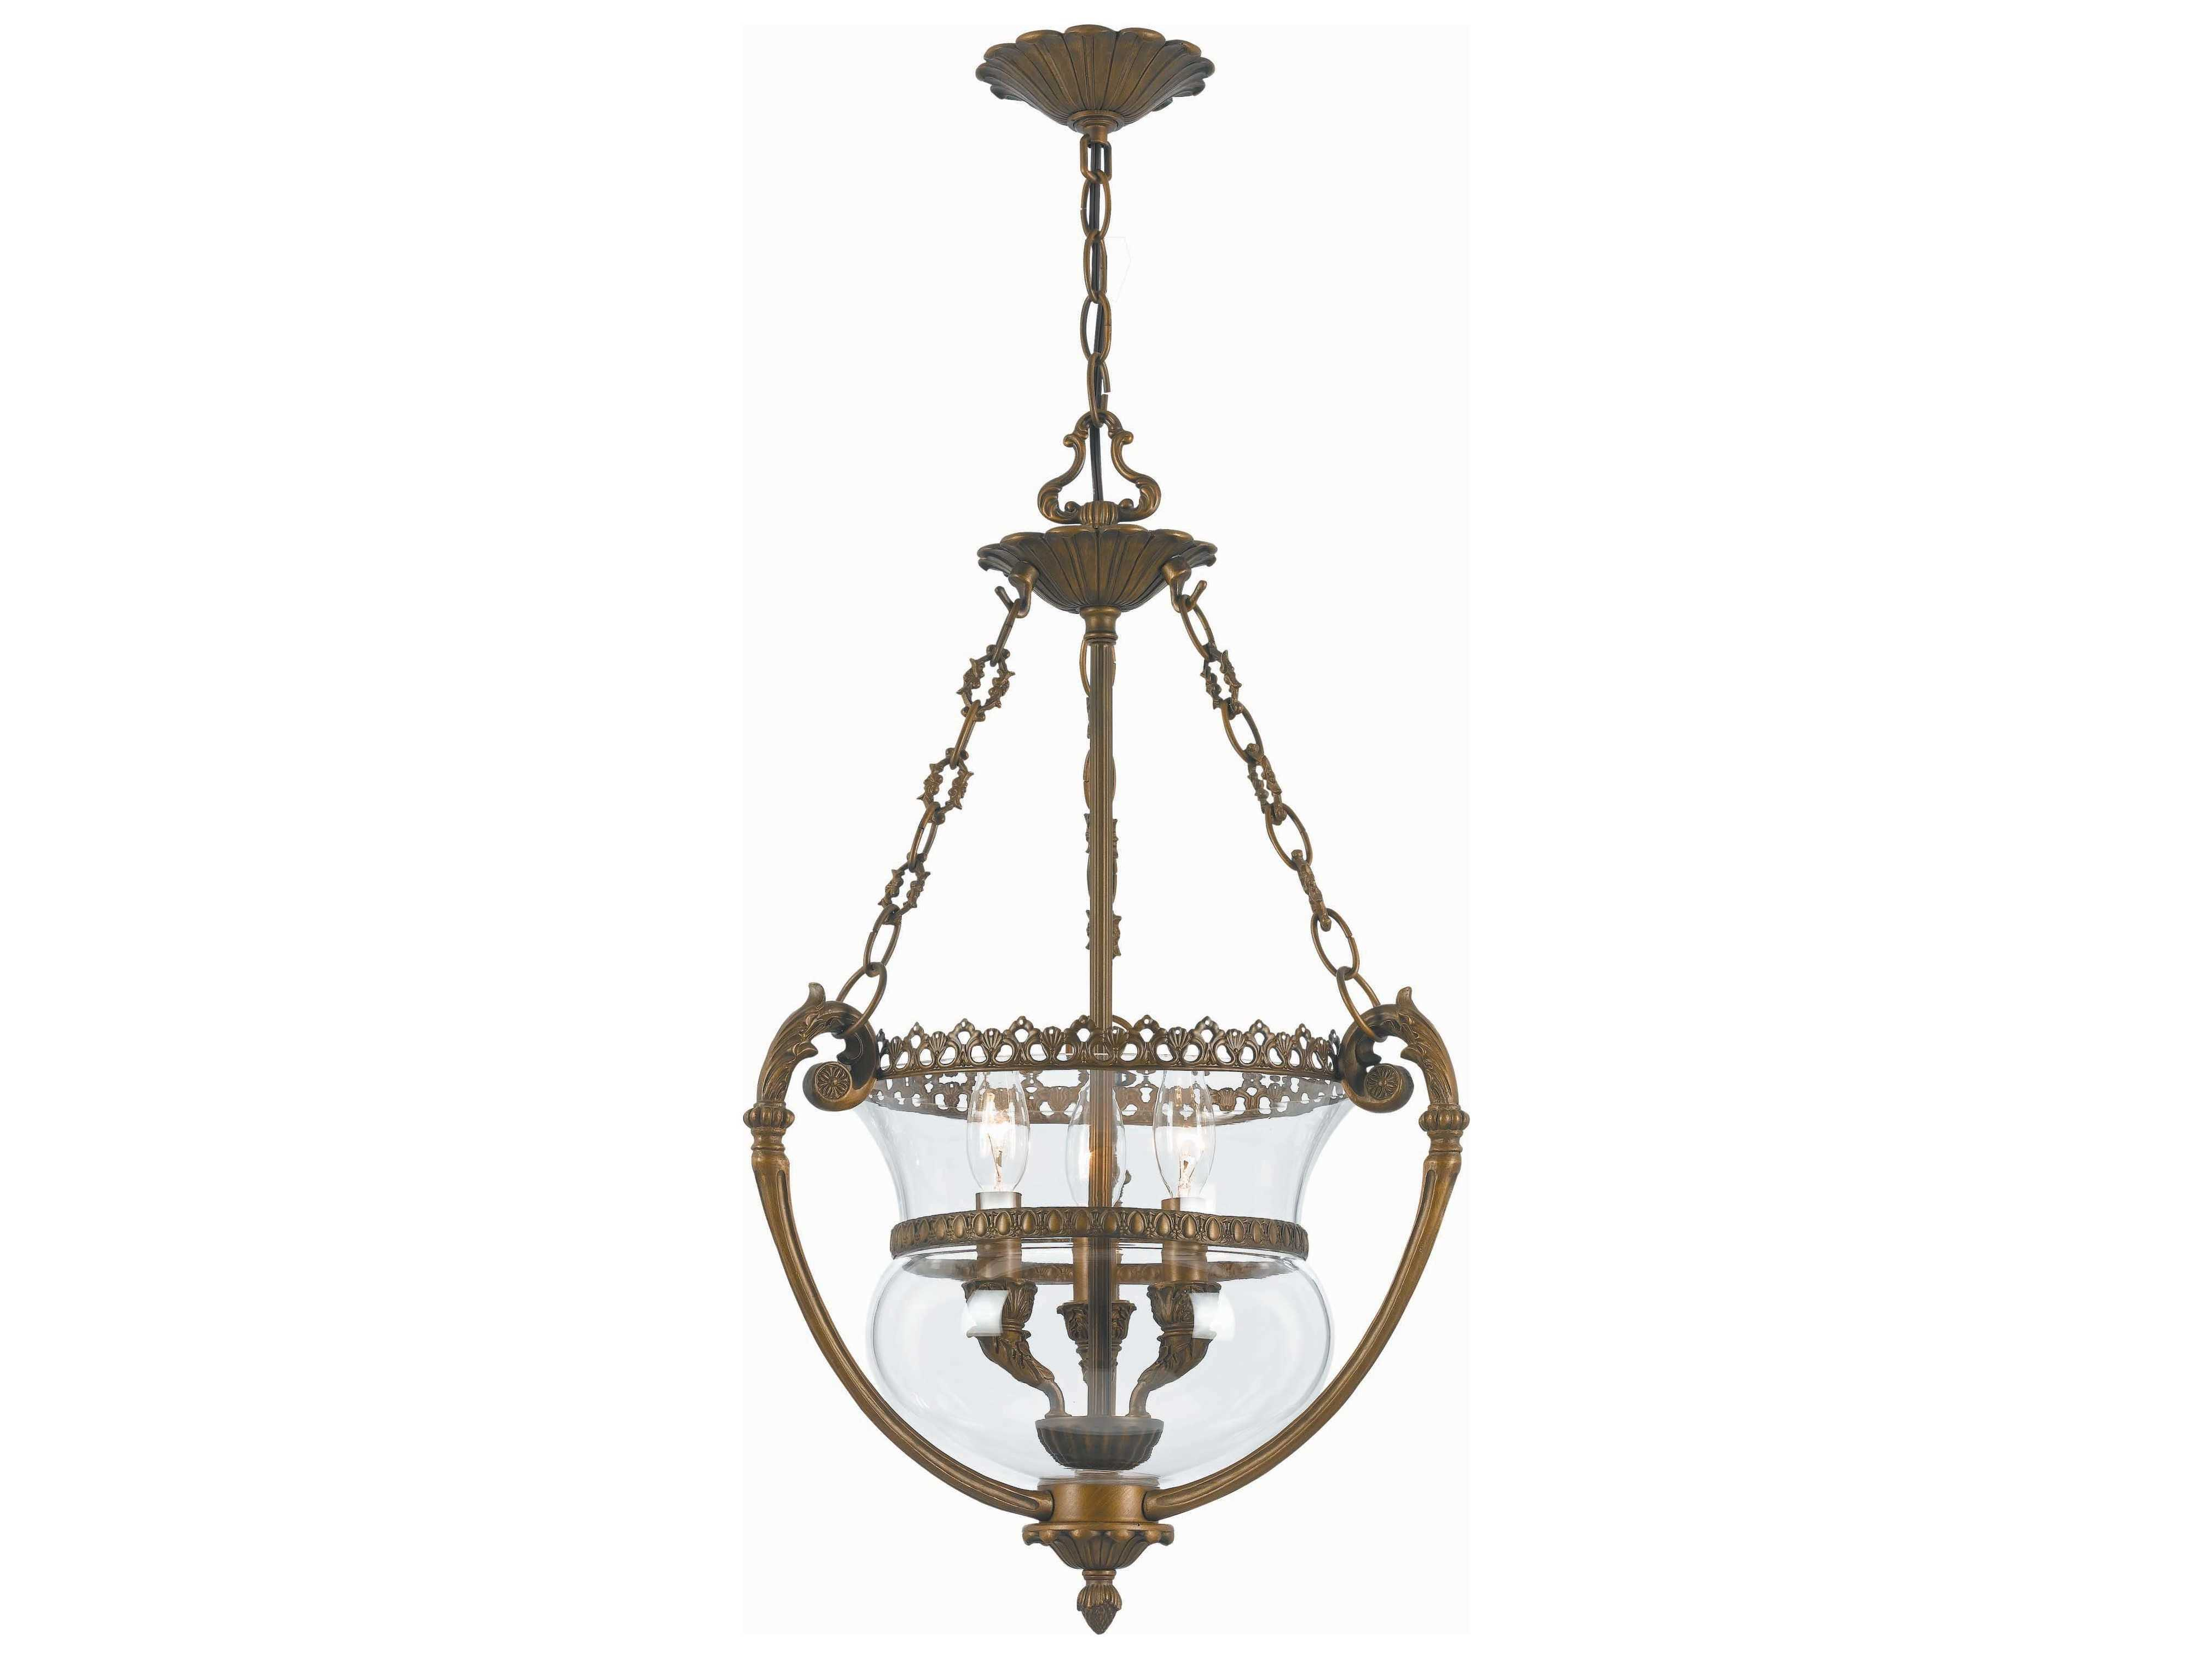 Crystorama Pendant Antique Brass Three Light Pendant Light